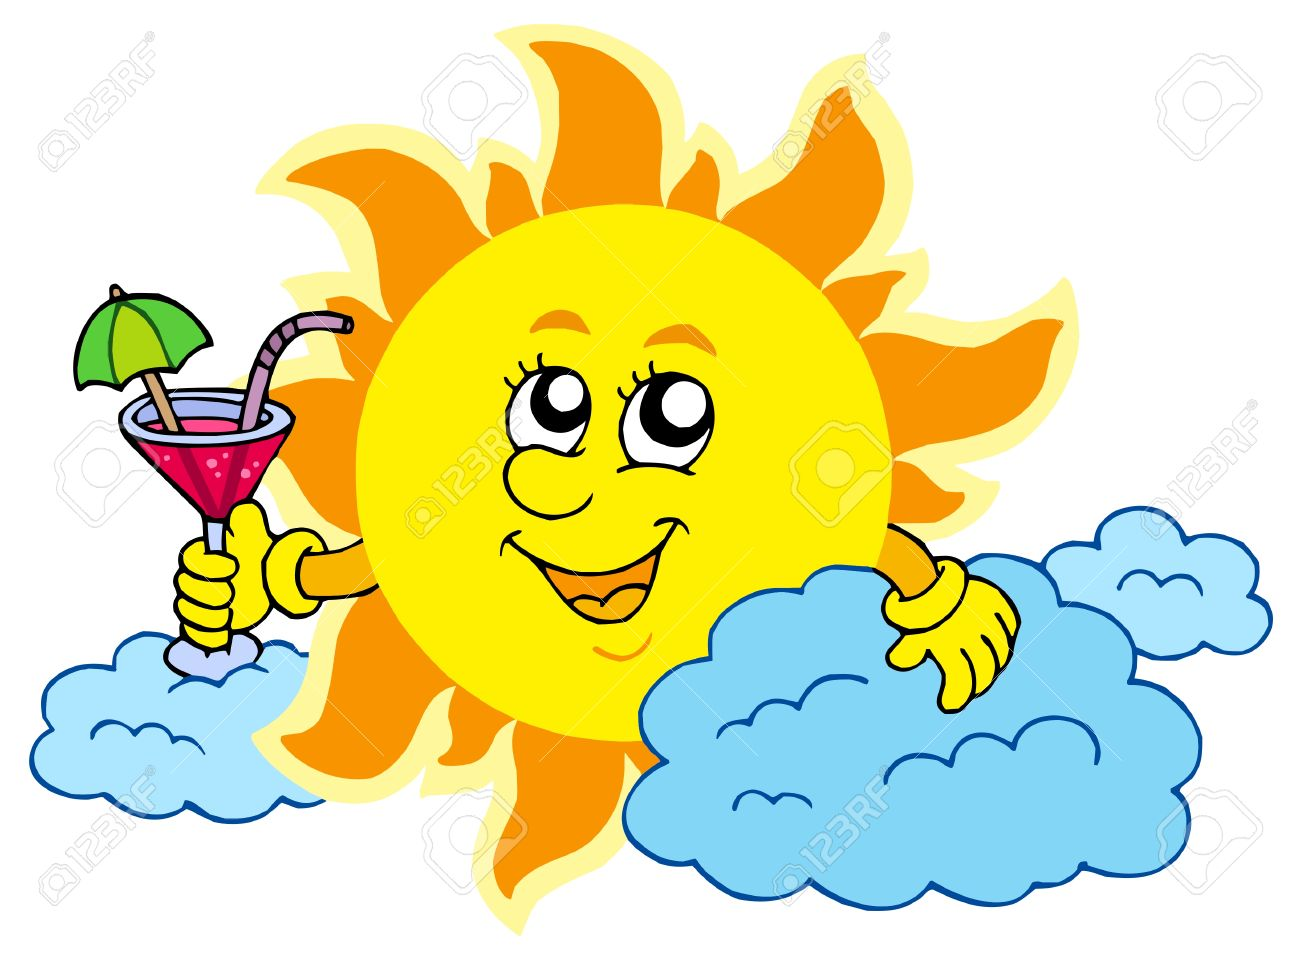 5078838-sun-with-drink-vector-illustration-